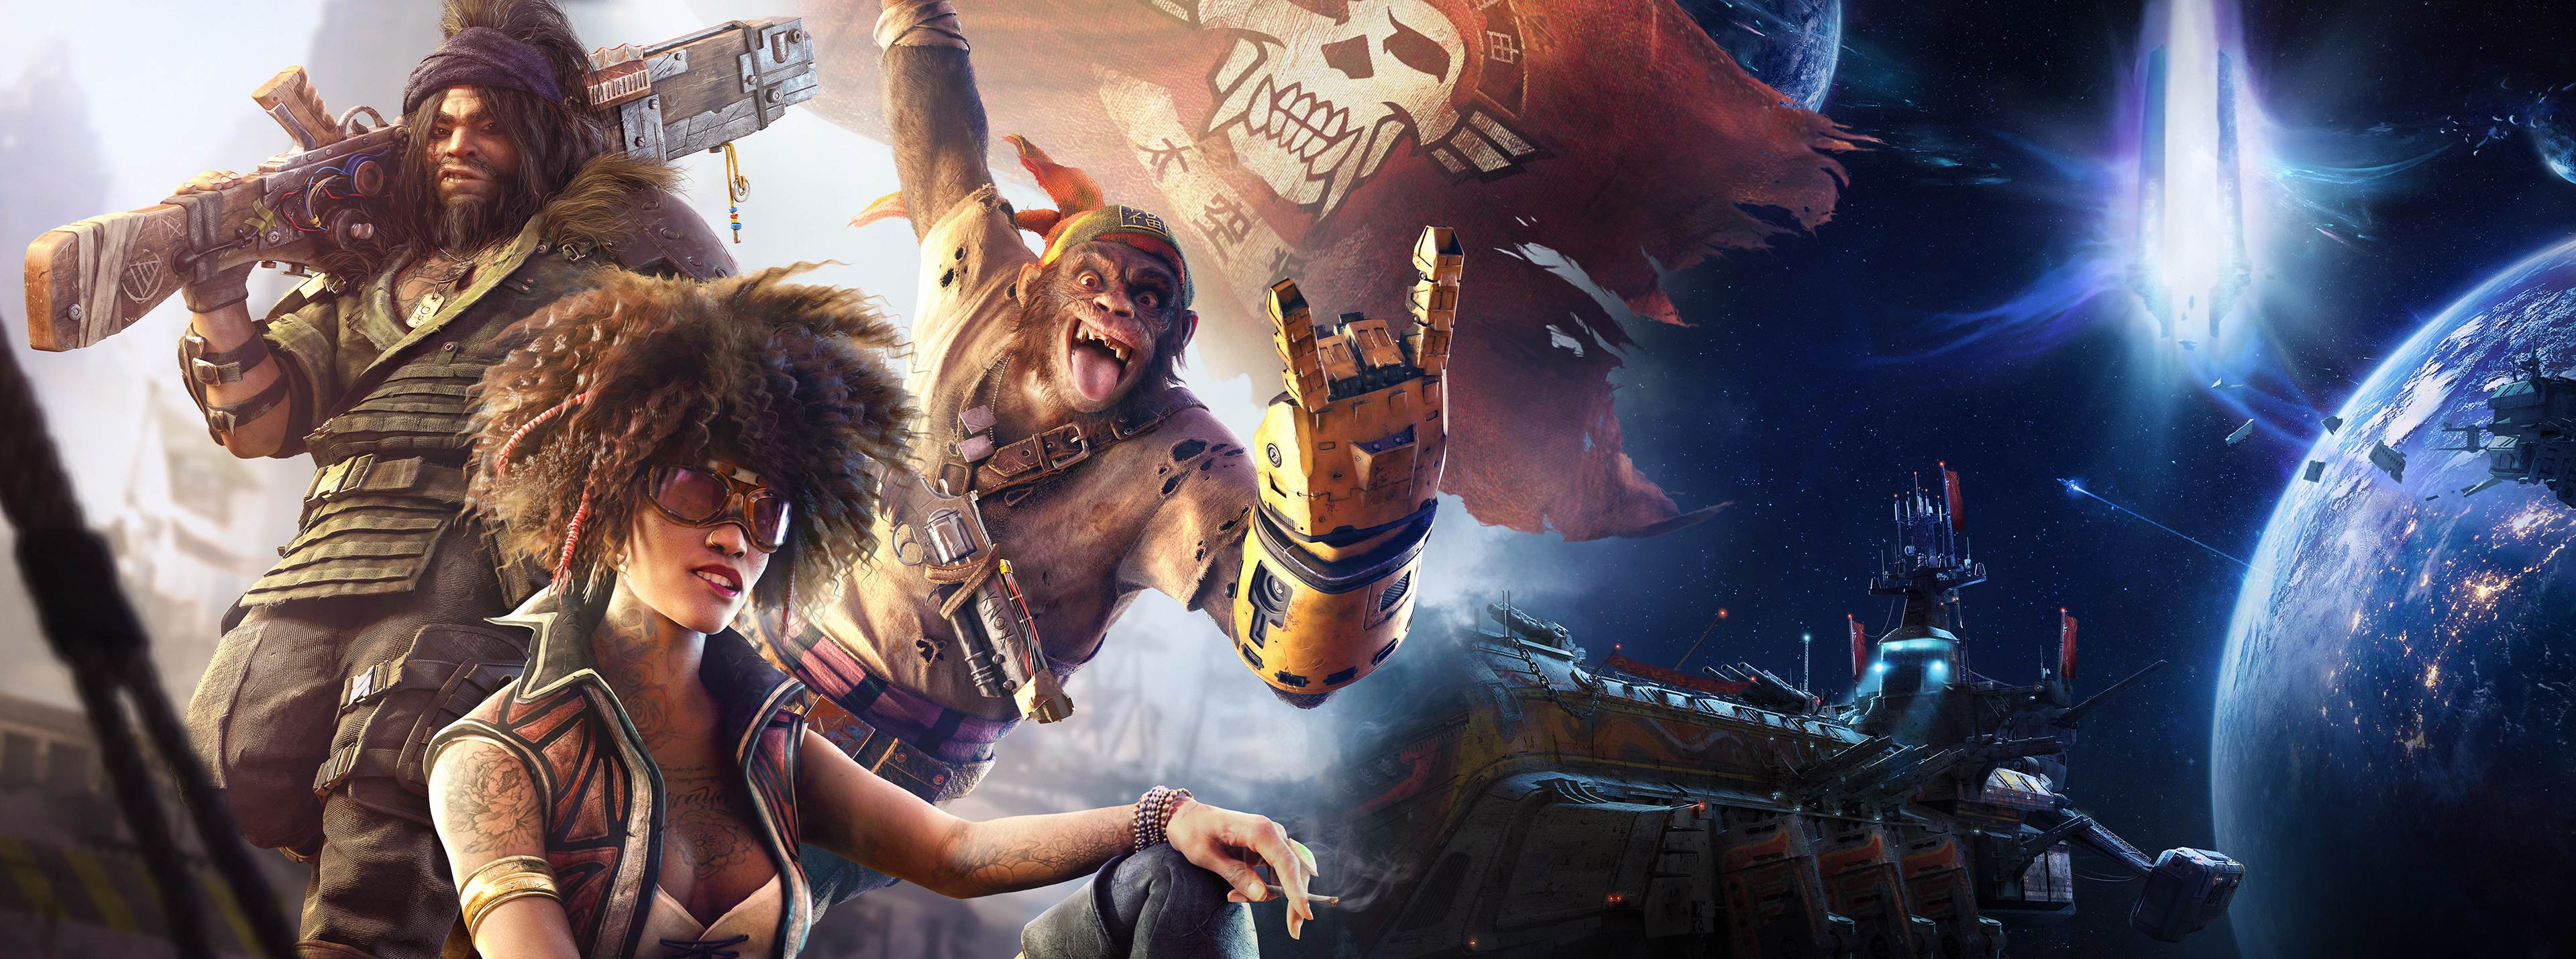 Beyond Good and Evil 2 – Bild 8